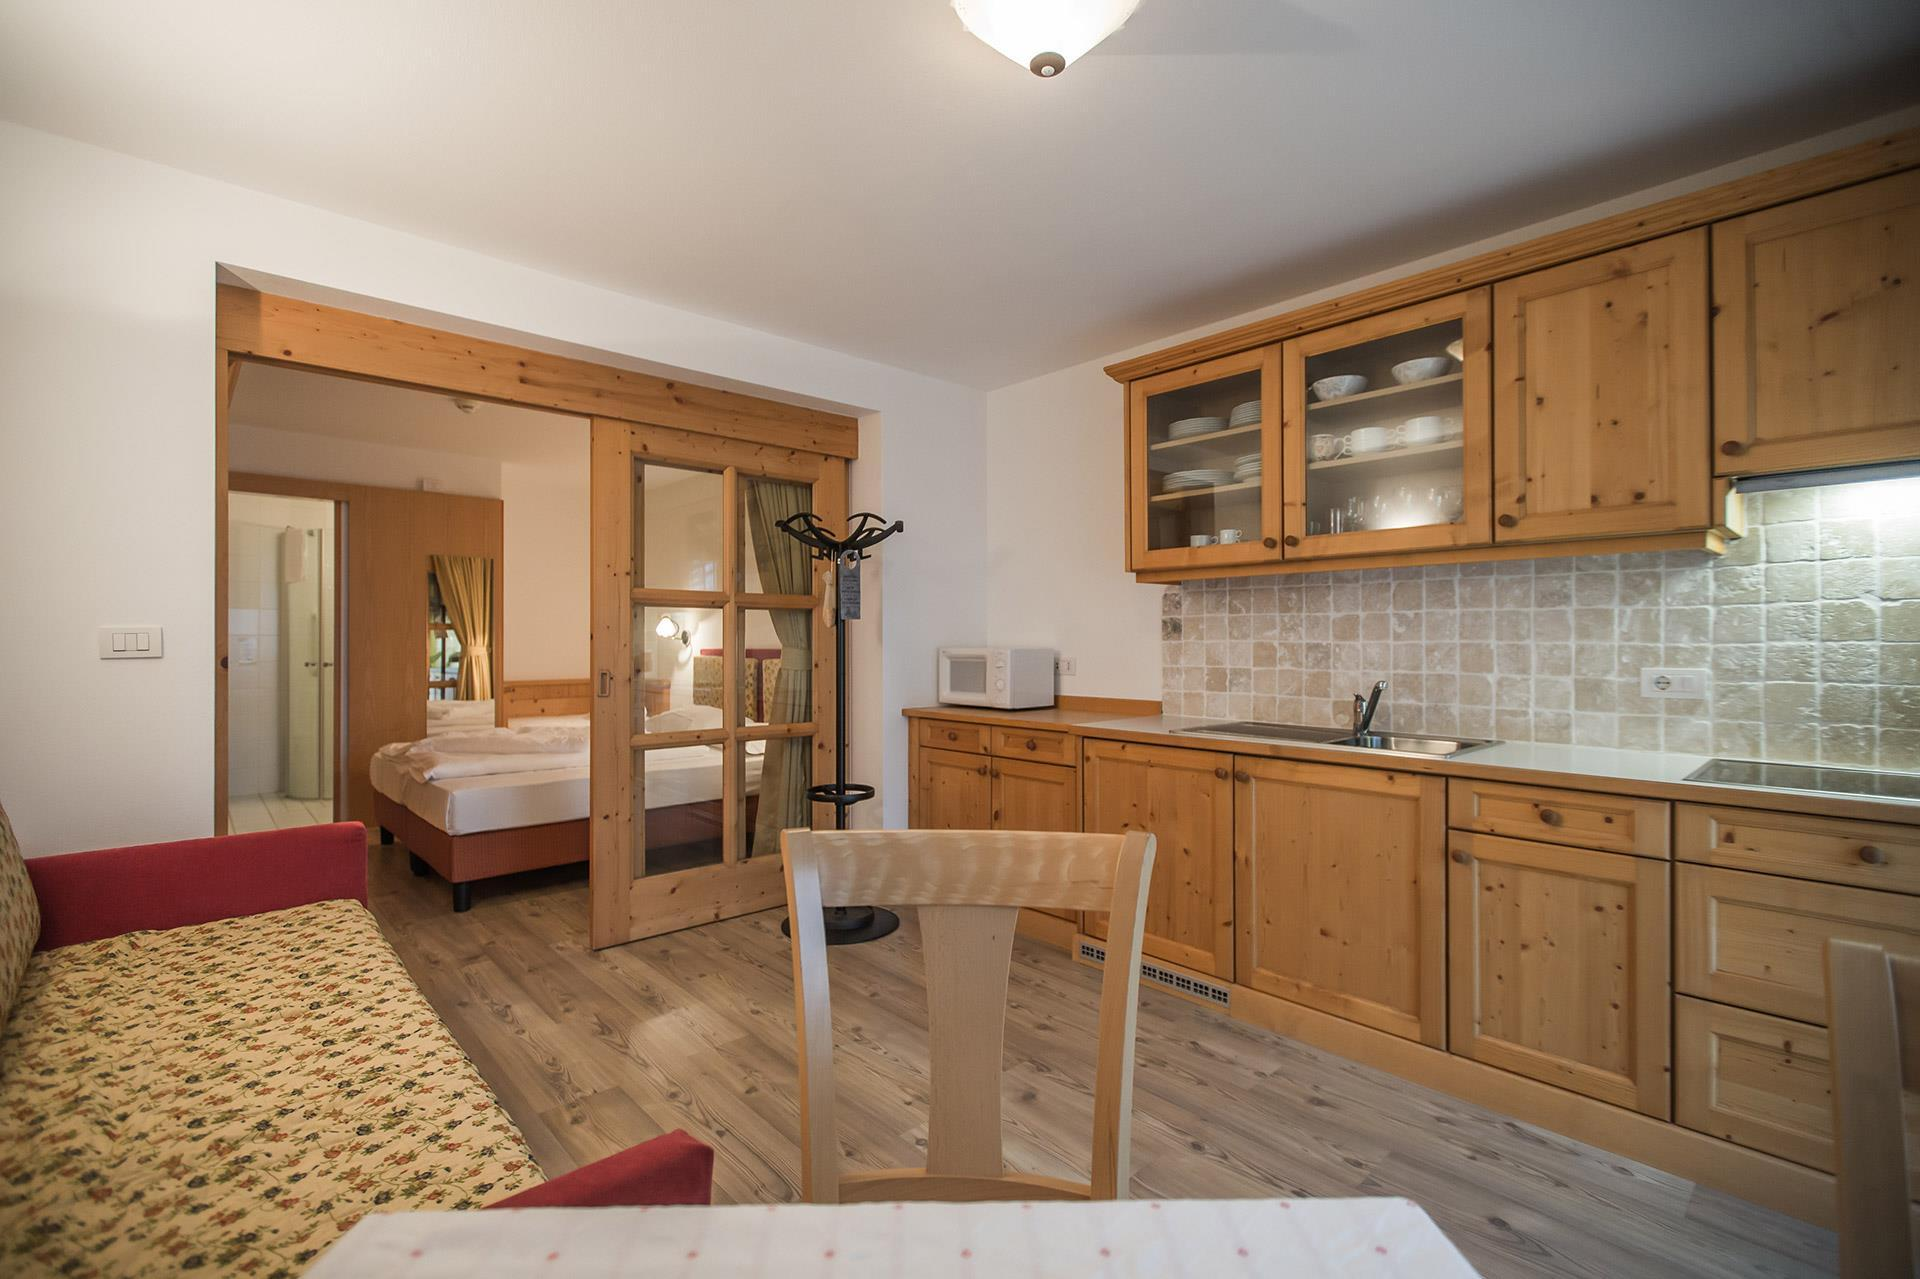 Apartments in Gais near Brunico - holidays in Val Pusteria - Garden ...